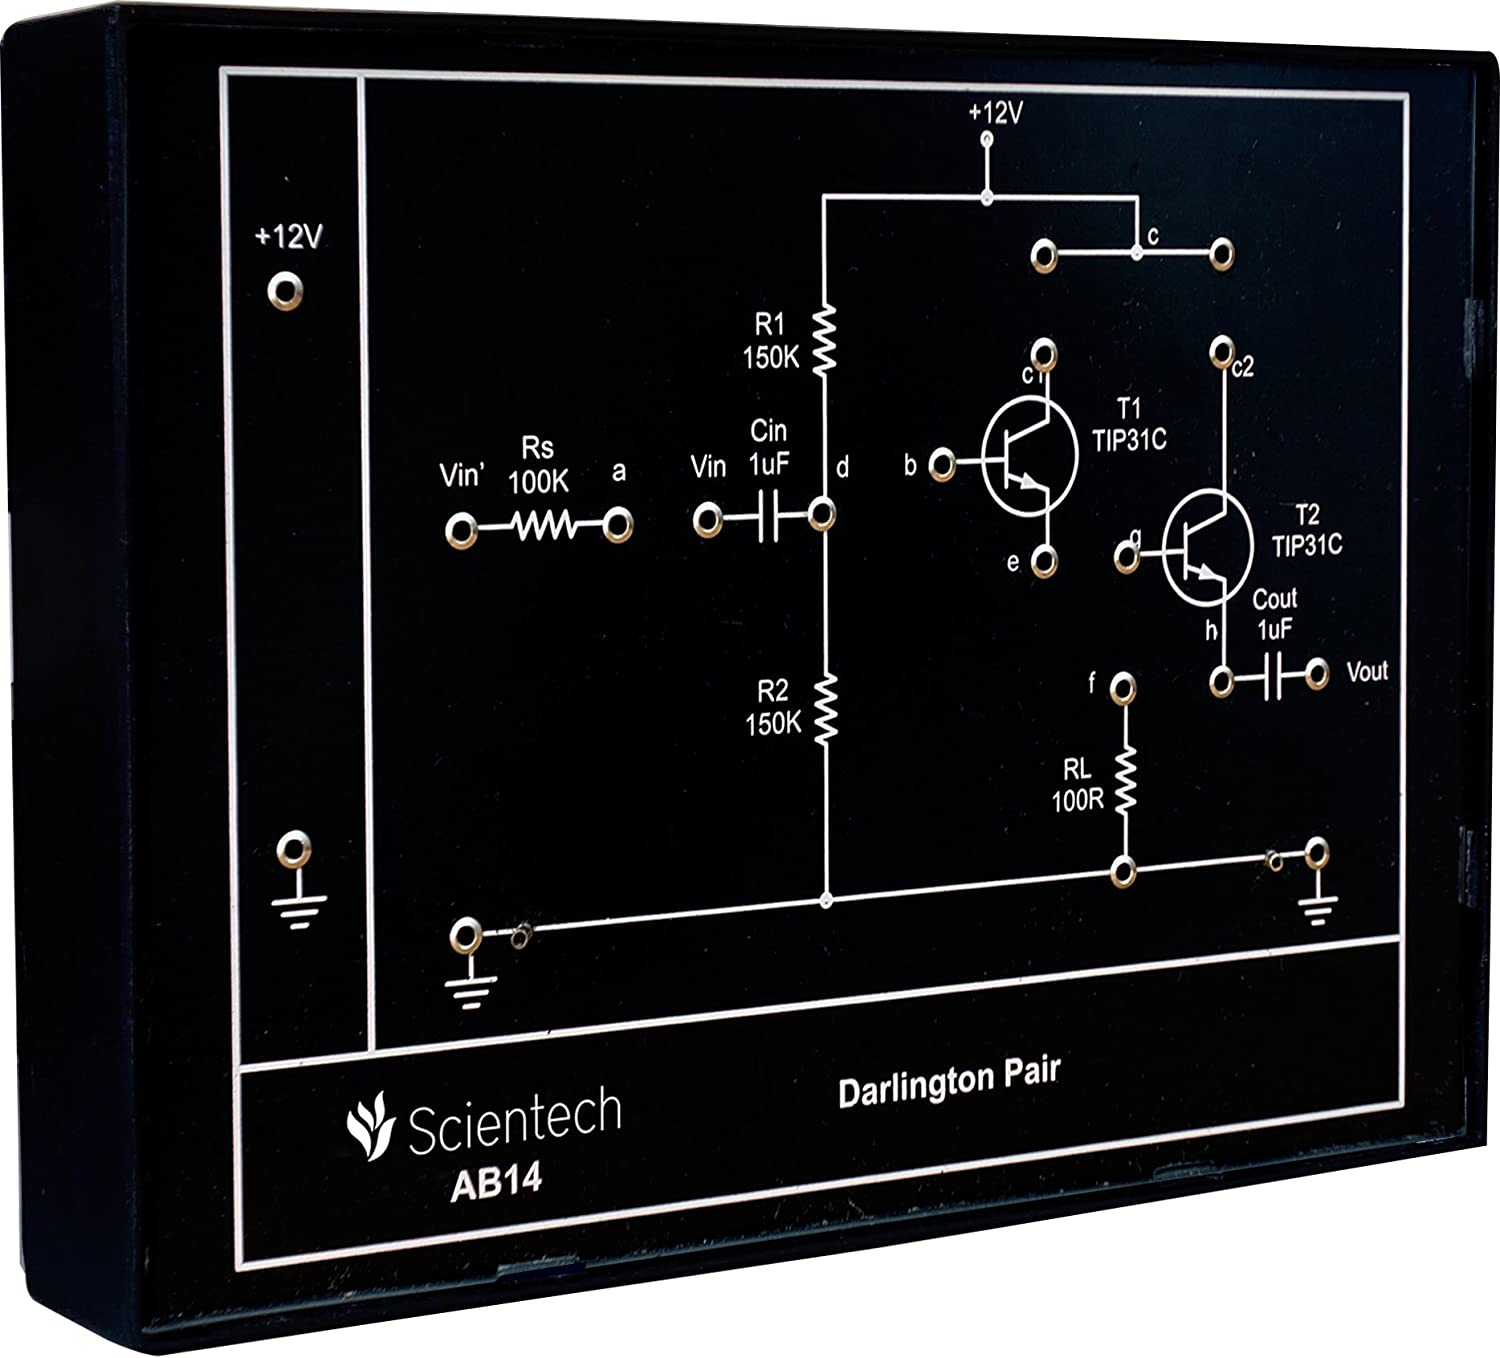 Ab14 Darlington Pair Experiment Board And Trainer Kit With 1 Year Basic Electricity Electronics Transistor Pairs Warranty Without Power Supply